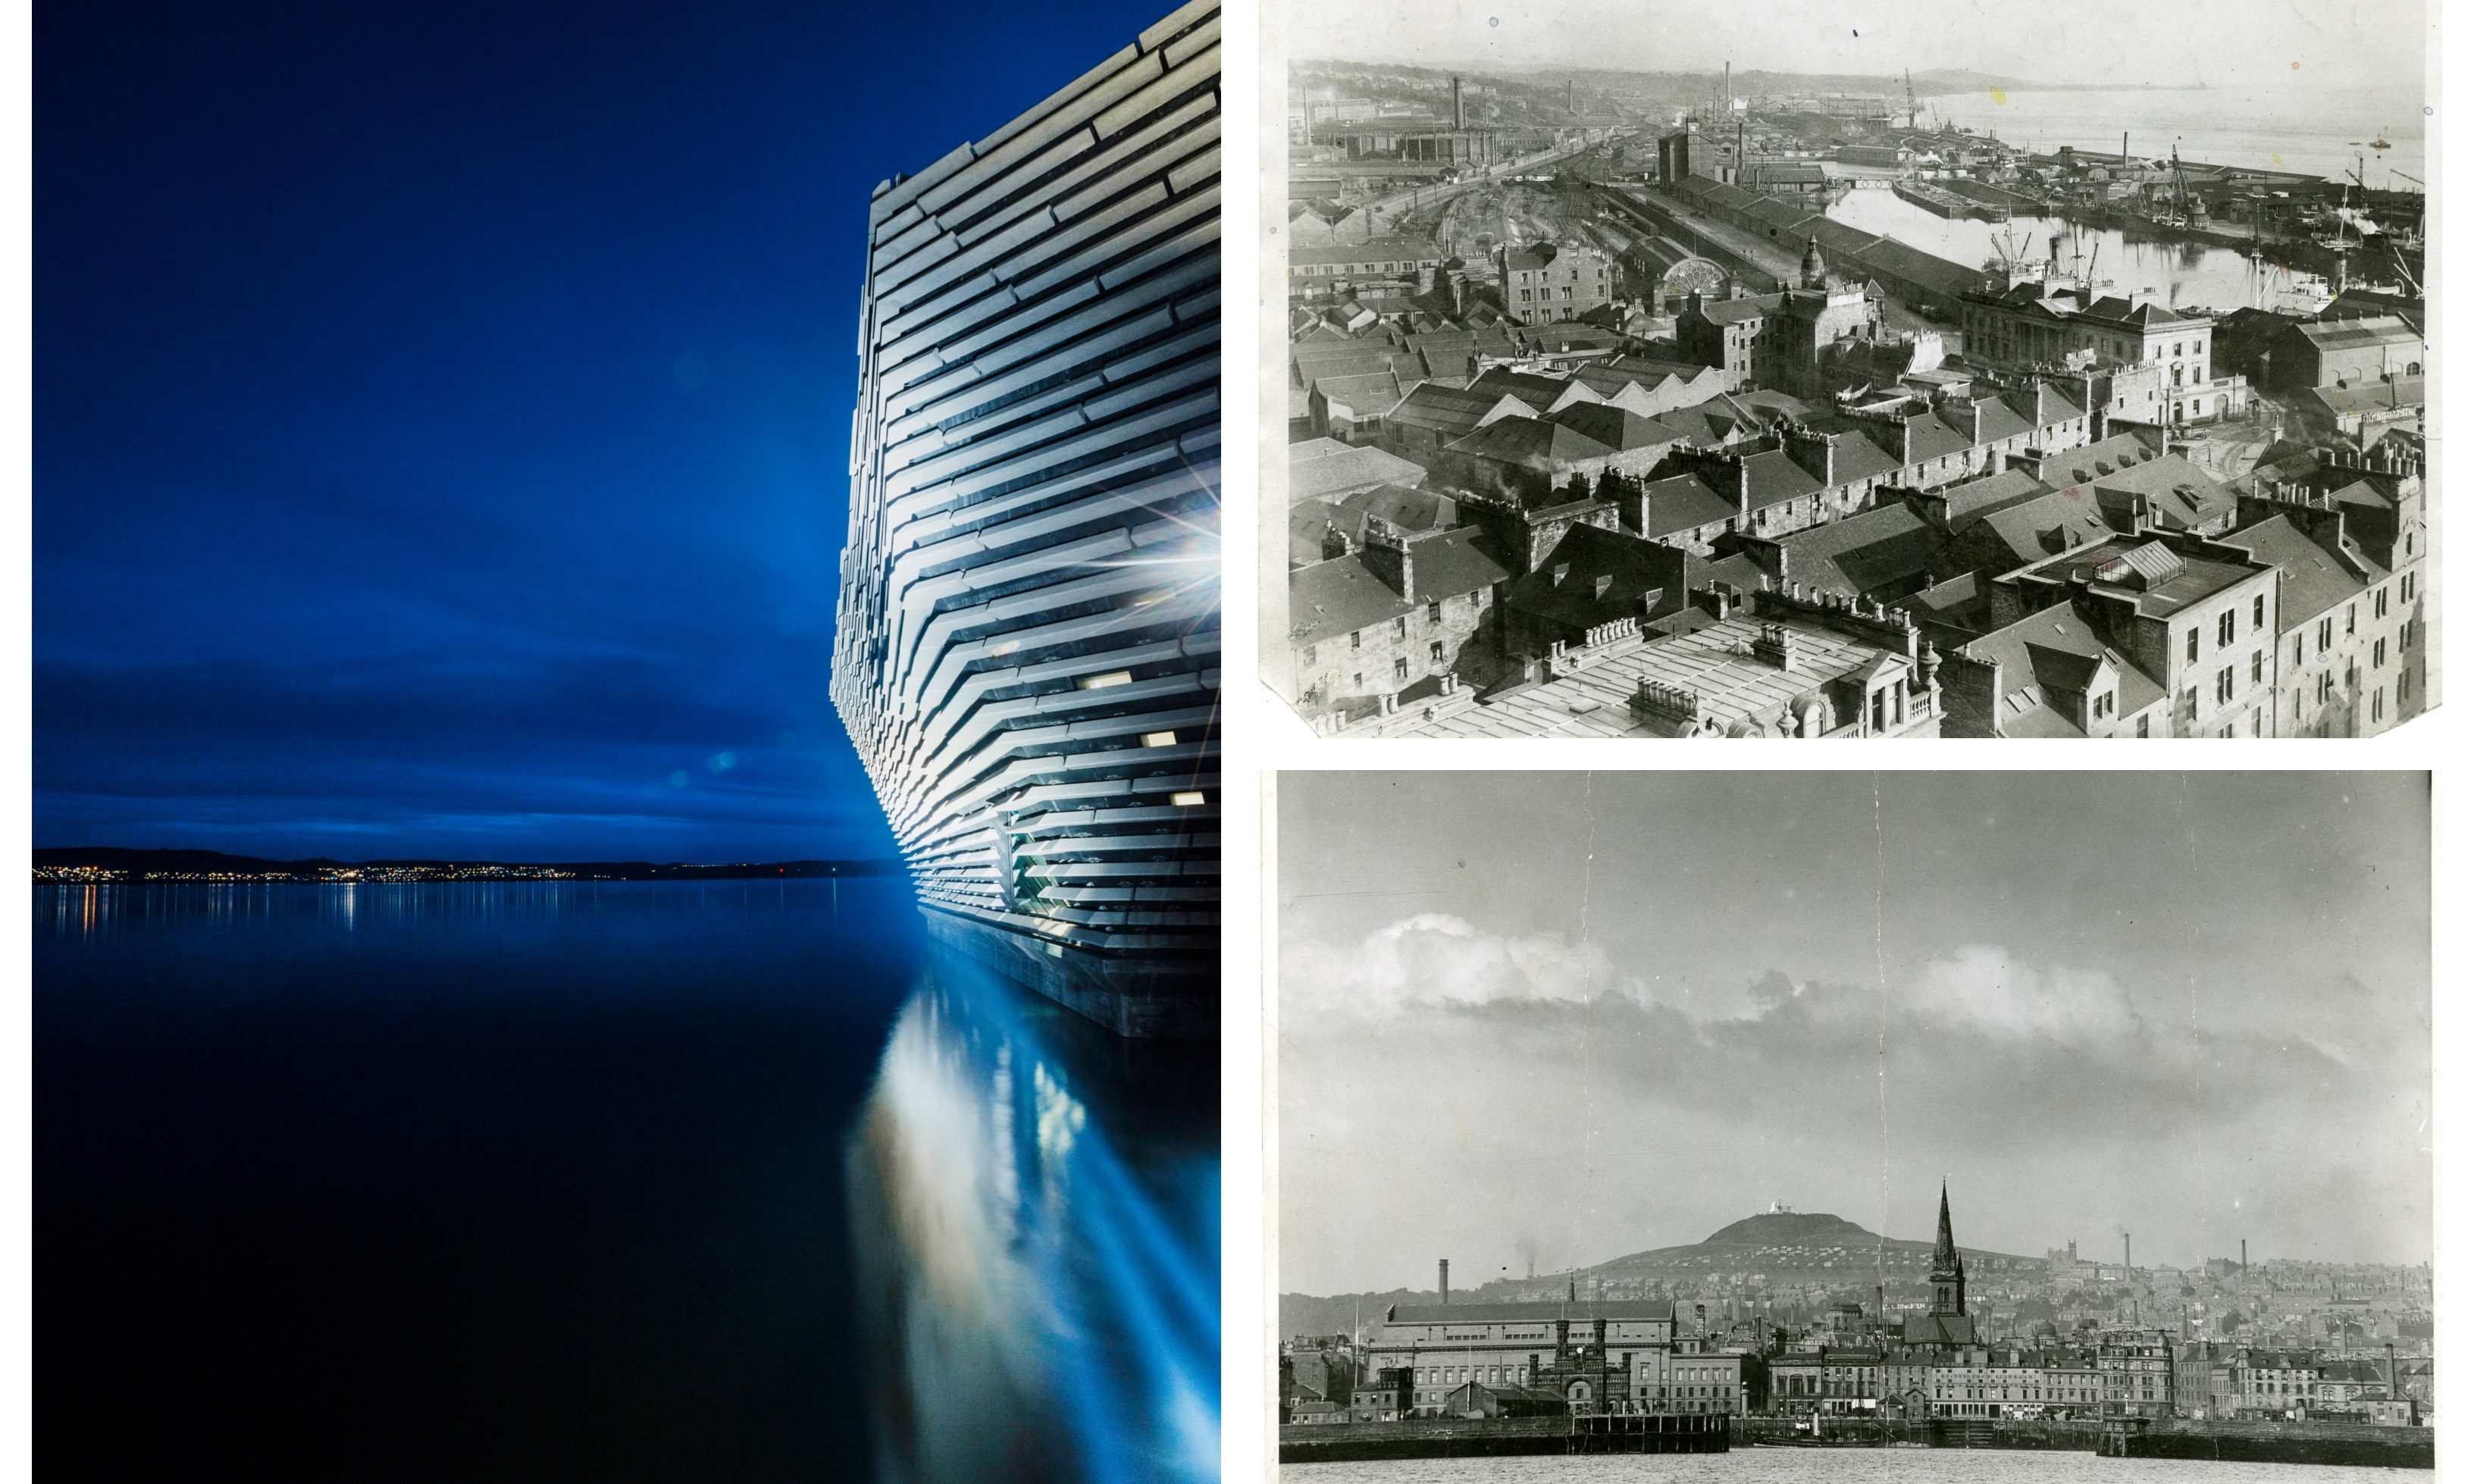 Dundee waterfront has changed drastically in the past century.